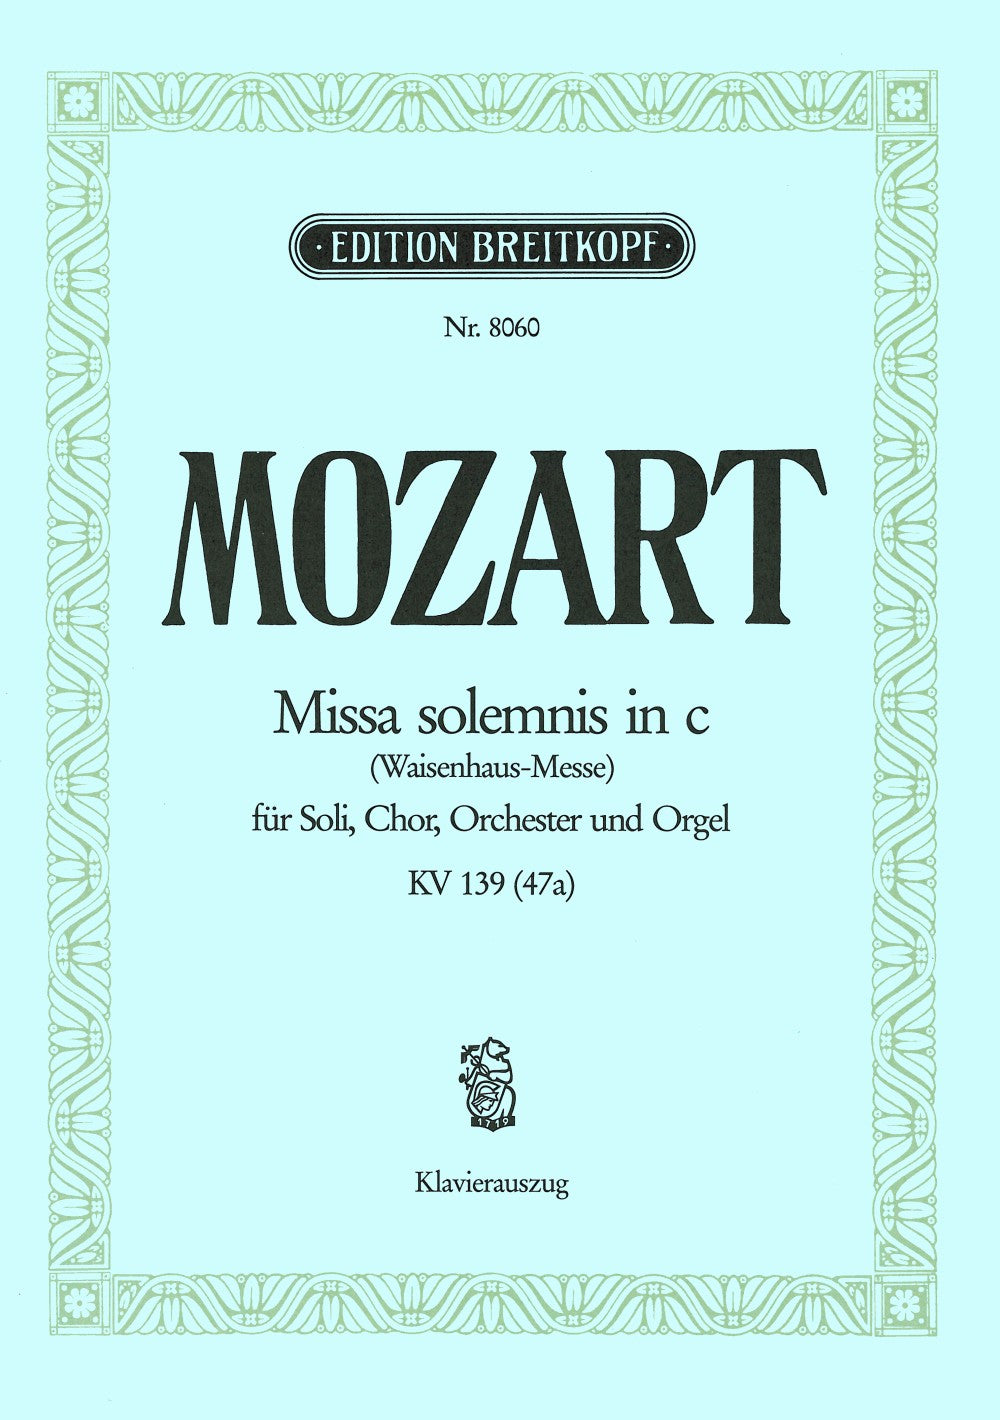 Mozart: Missa in C Minor, K. 139 (47a)